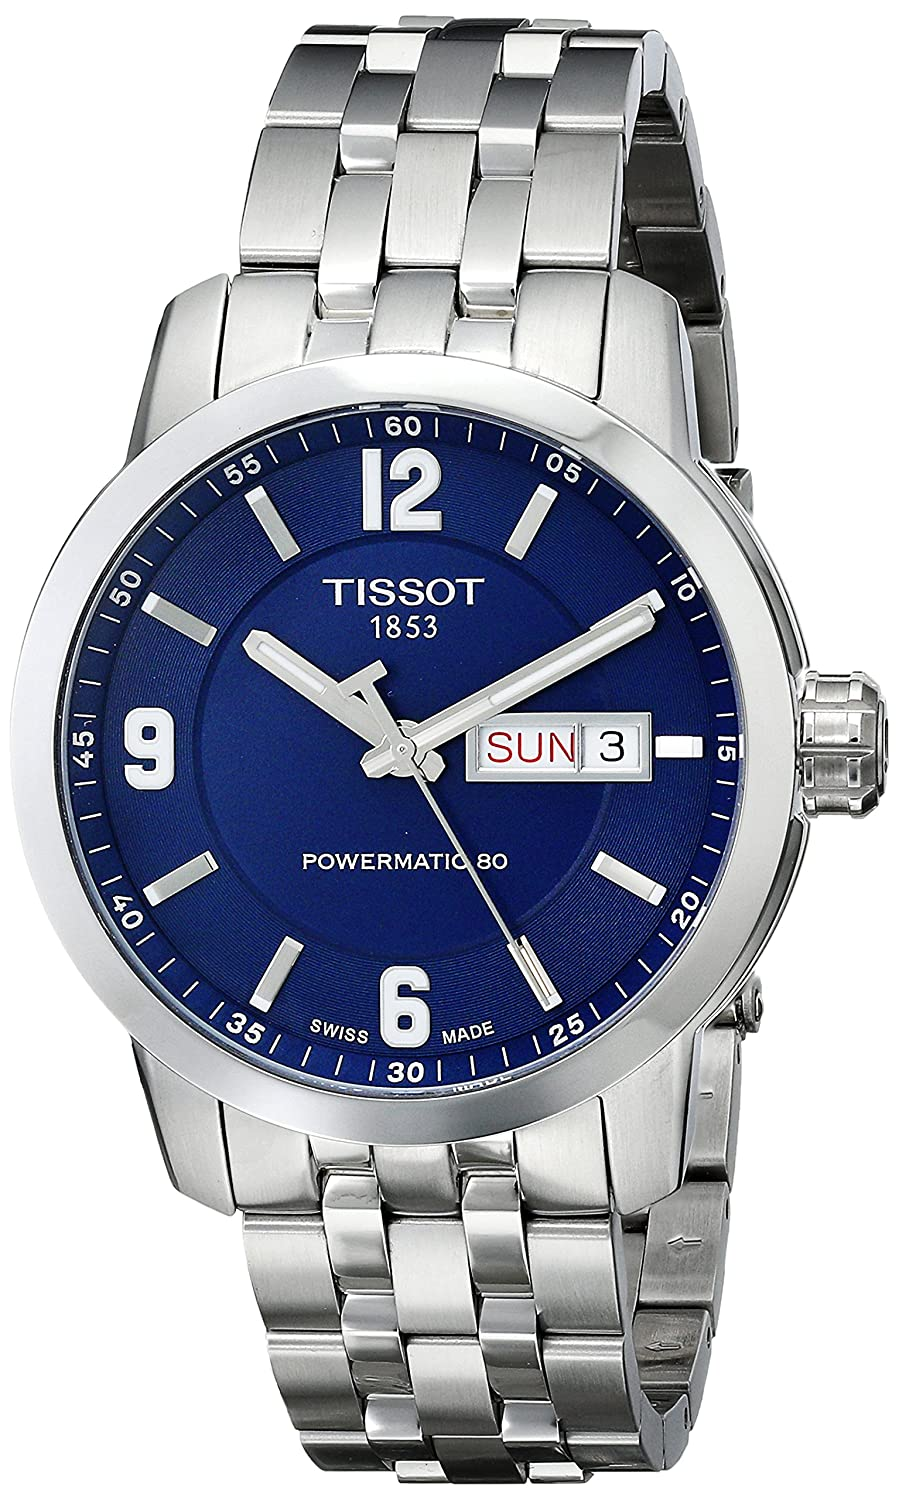 66c29bf84 Buy Tissot Men's T0554301104700 PRC 200 Analog Display Swiss Automatic  Silver-Tone Watch Online at Low Prices in India - Amazon.in